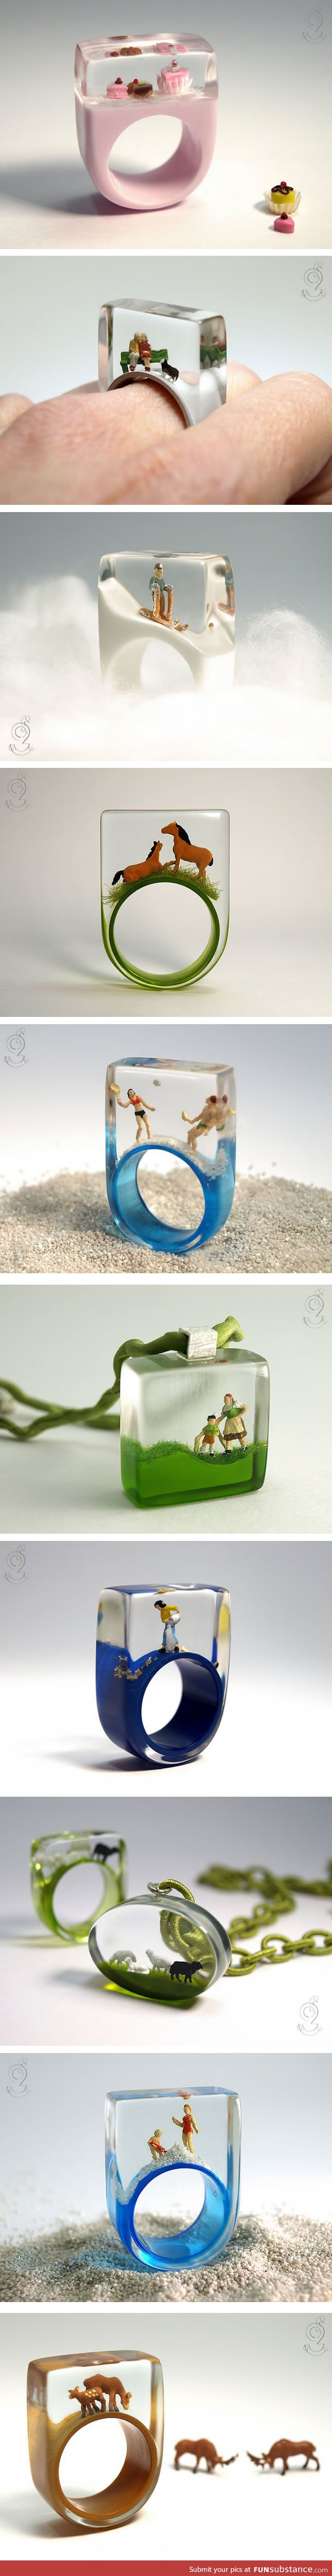 Diy resin jewelry scenes